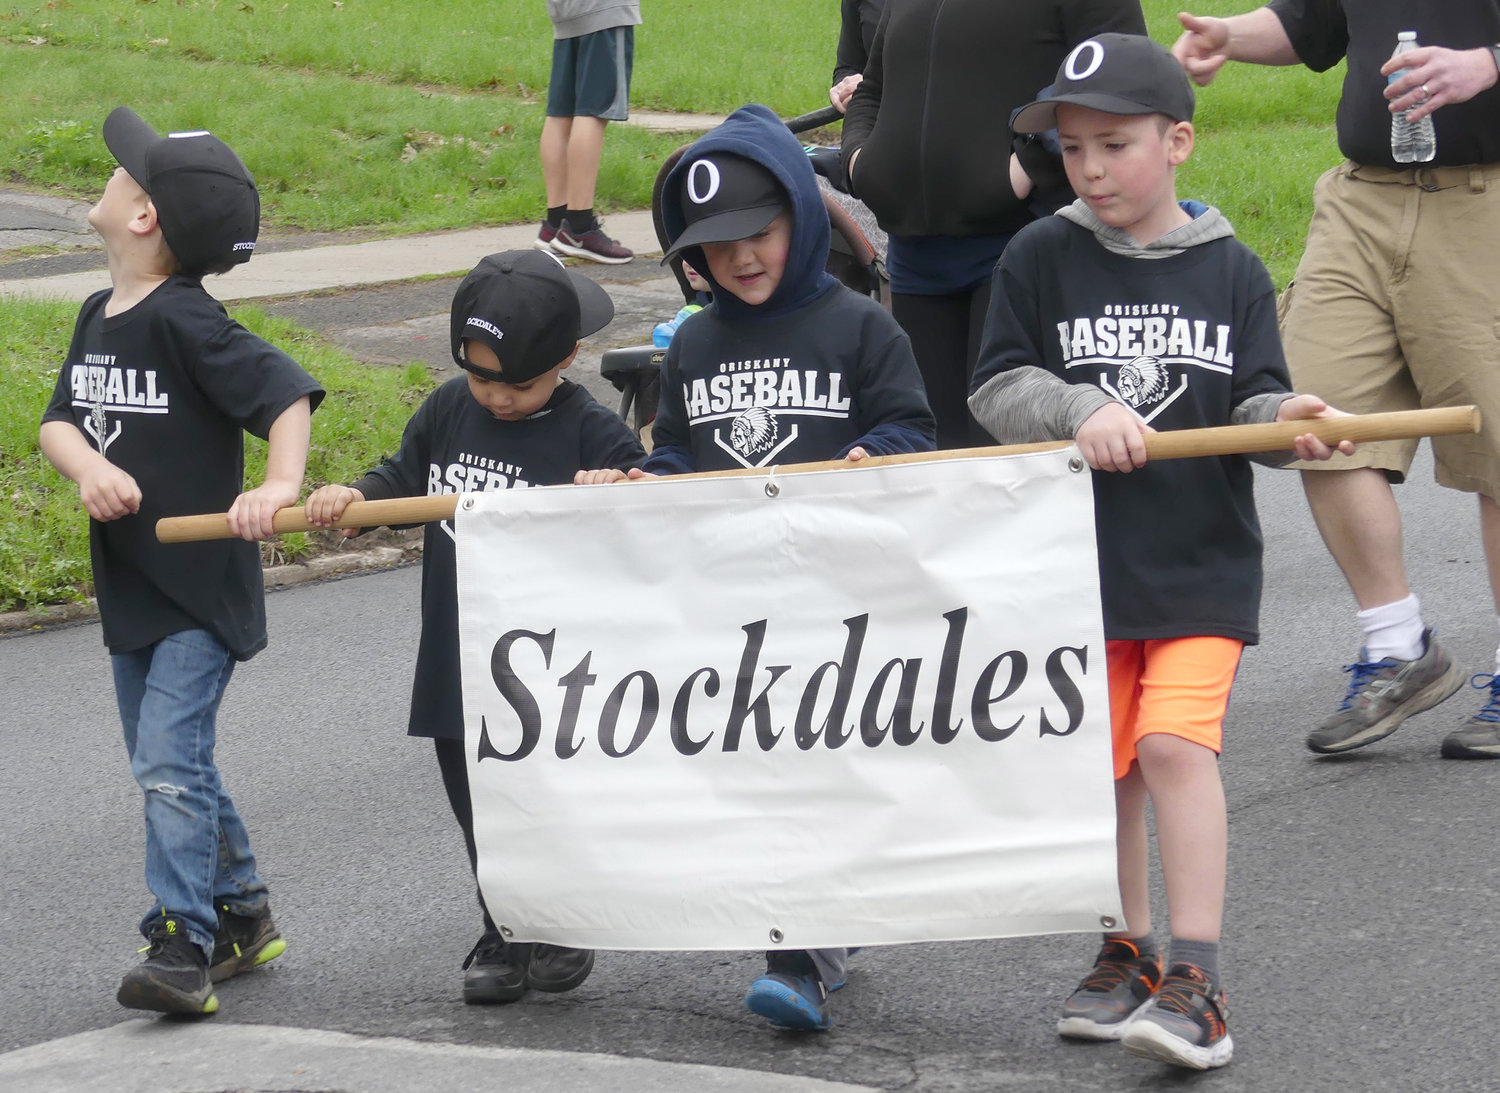 Stockdales t-ball team members march during Saturdays opening day parade in Oriskany.